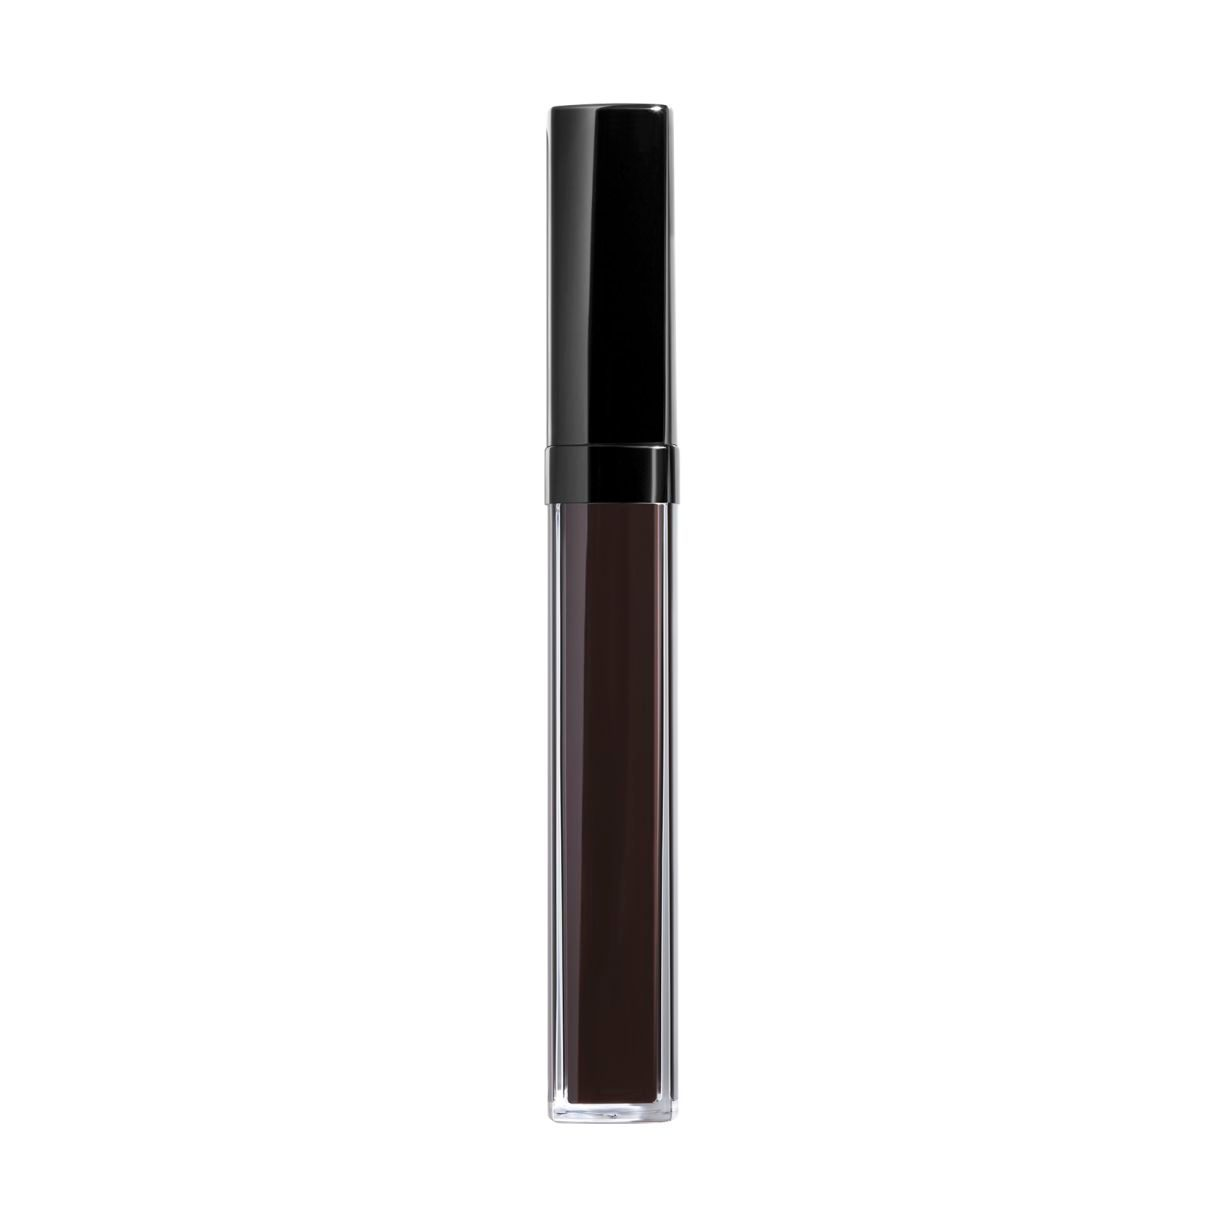 ROUGE COCO GLOSS ROUGE COCO GLOSS MOISTURISING GLOSSIMER. LIMITED EDITION. 816 - LAQUE NOIRE